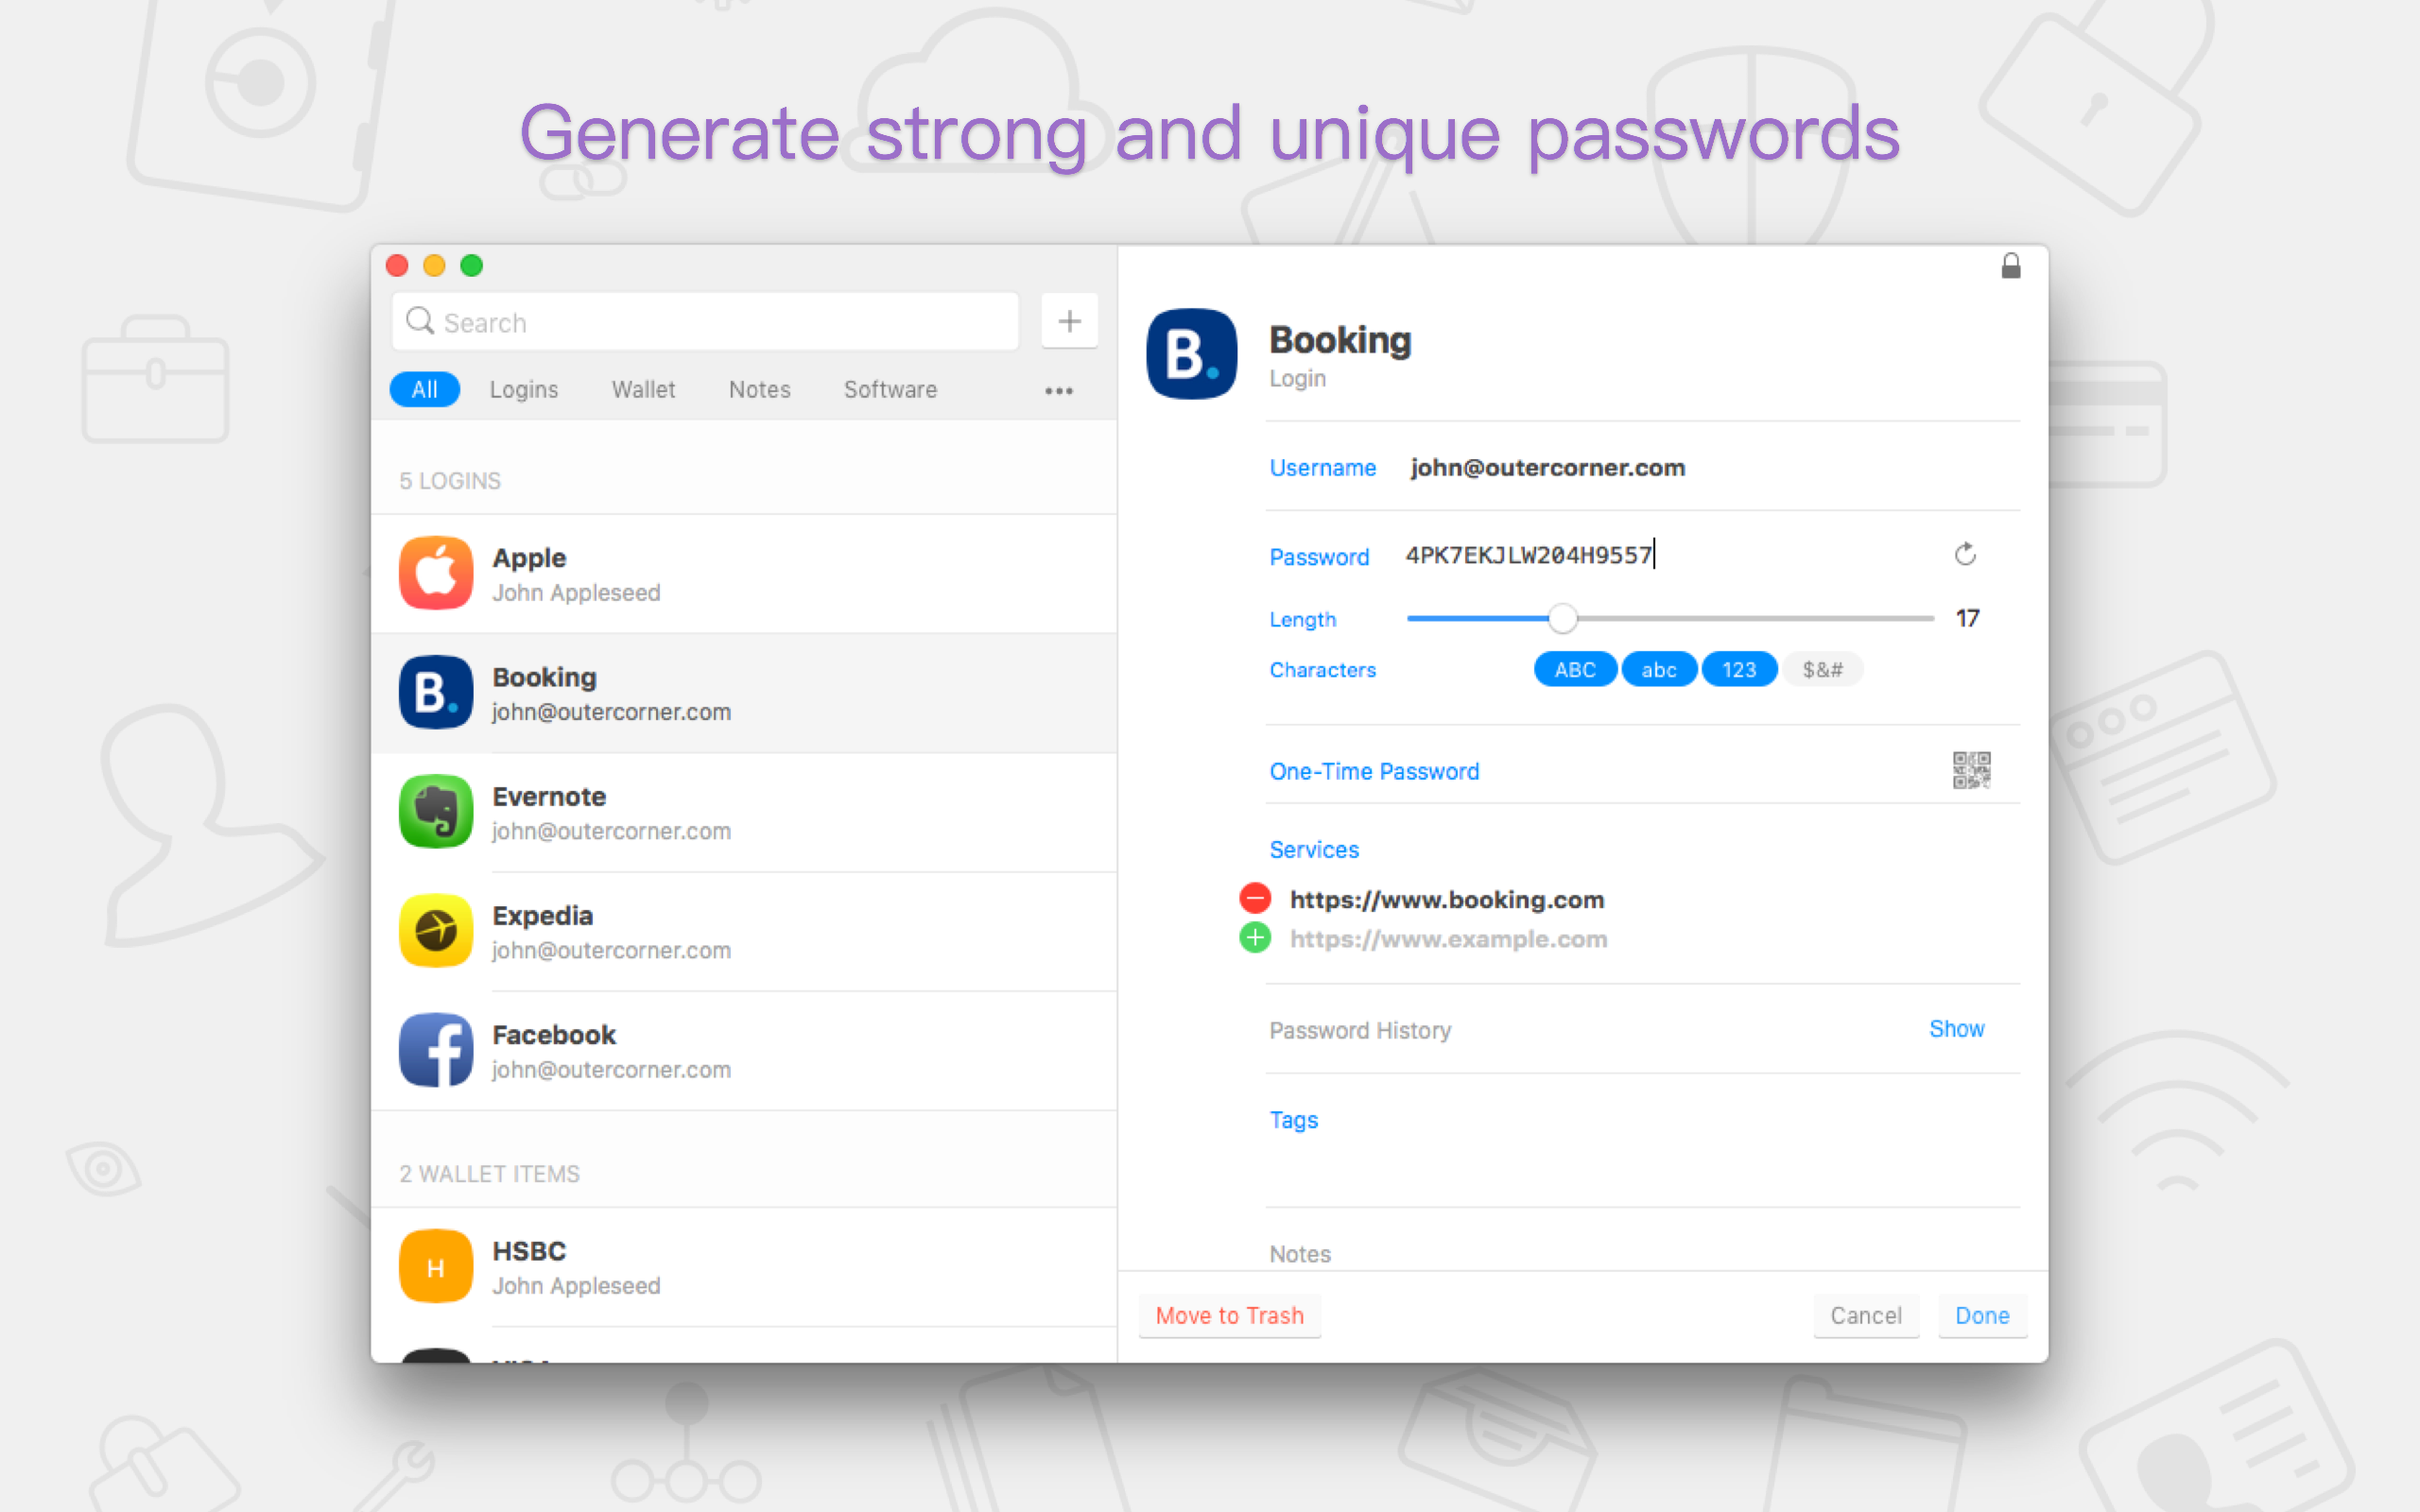 Generate strong and unique passwords